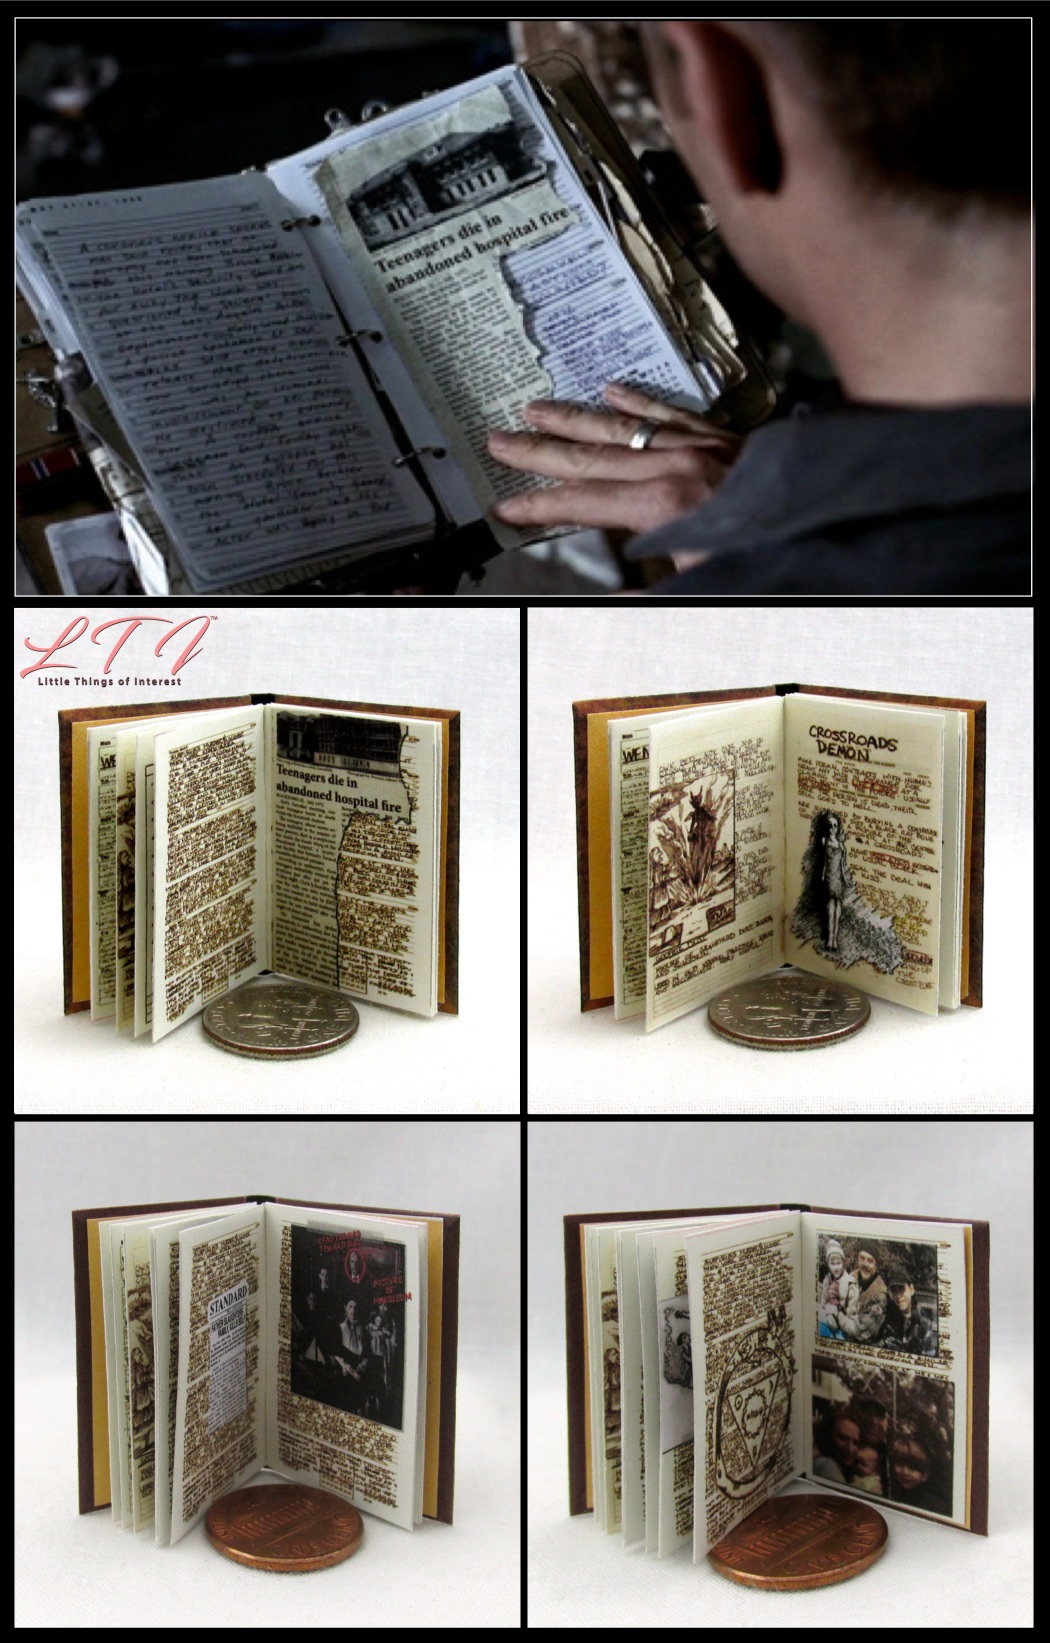 WINCHESTER DIARY Illustrated Miniature Book 1:12 Scale Readable SUPER NATURAL